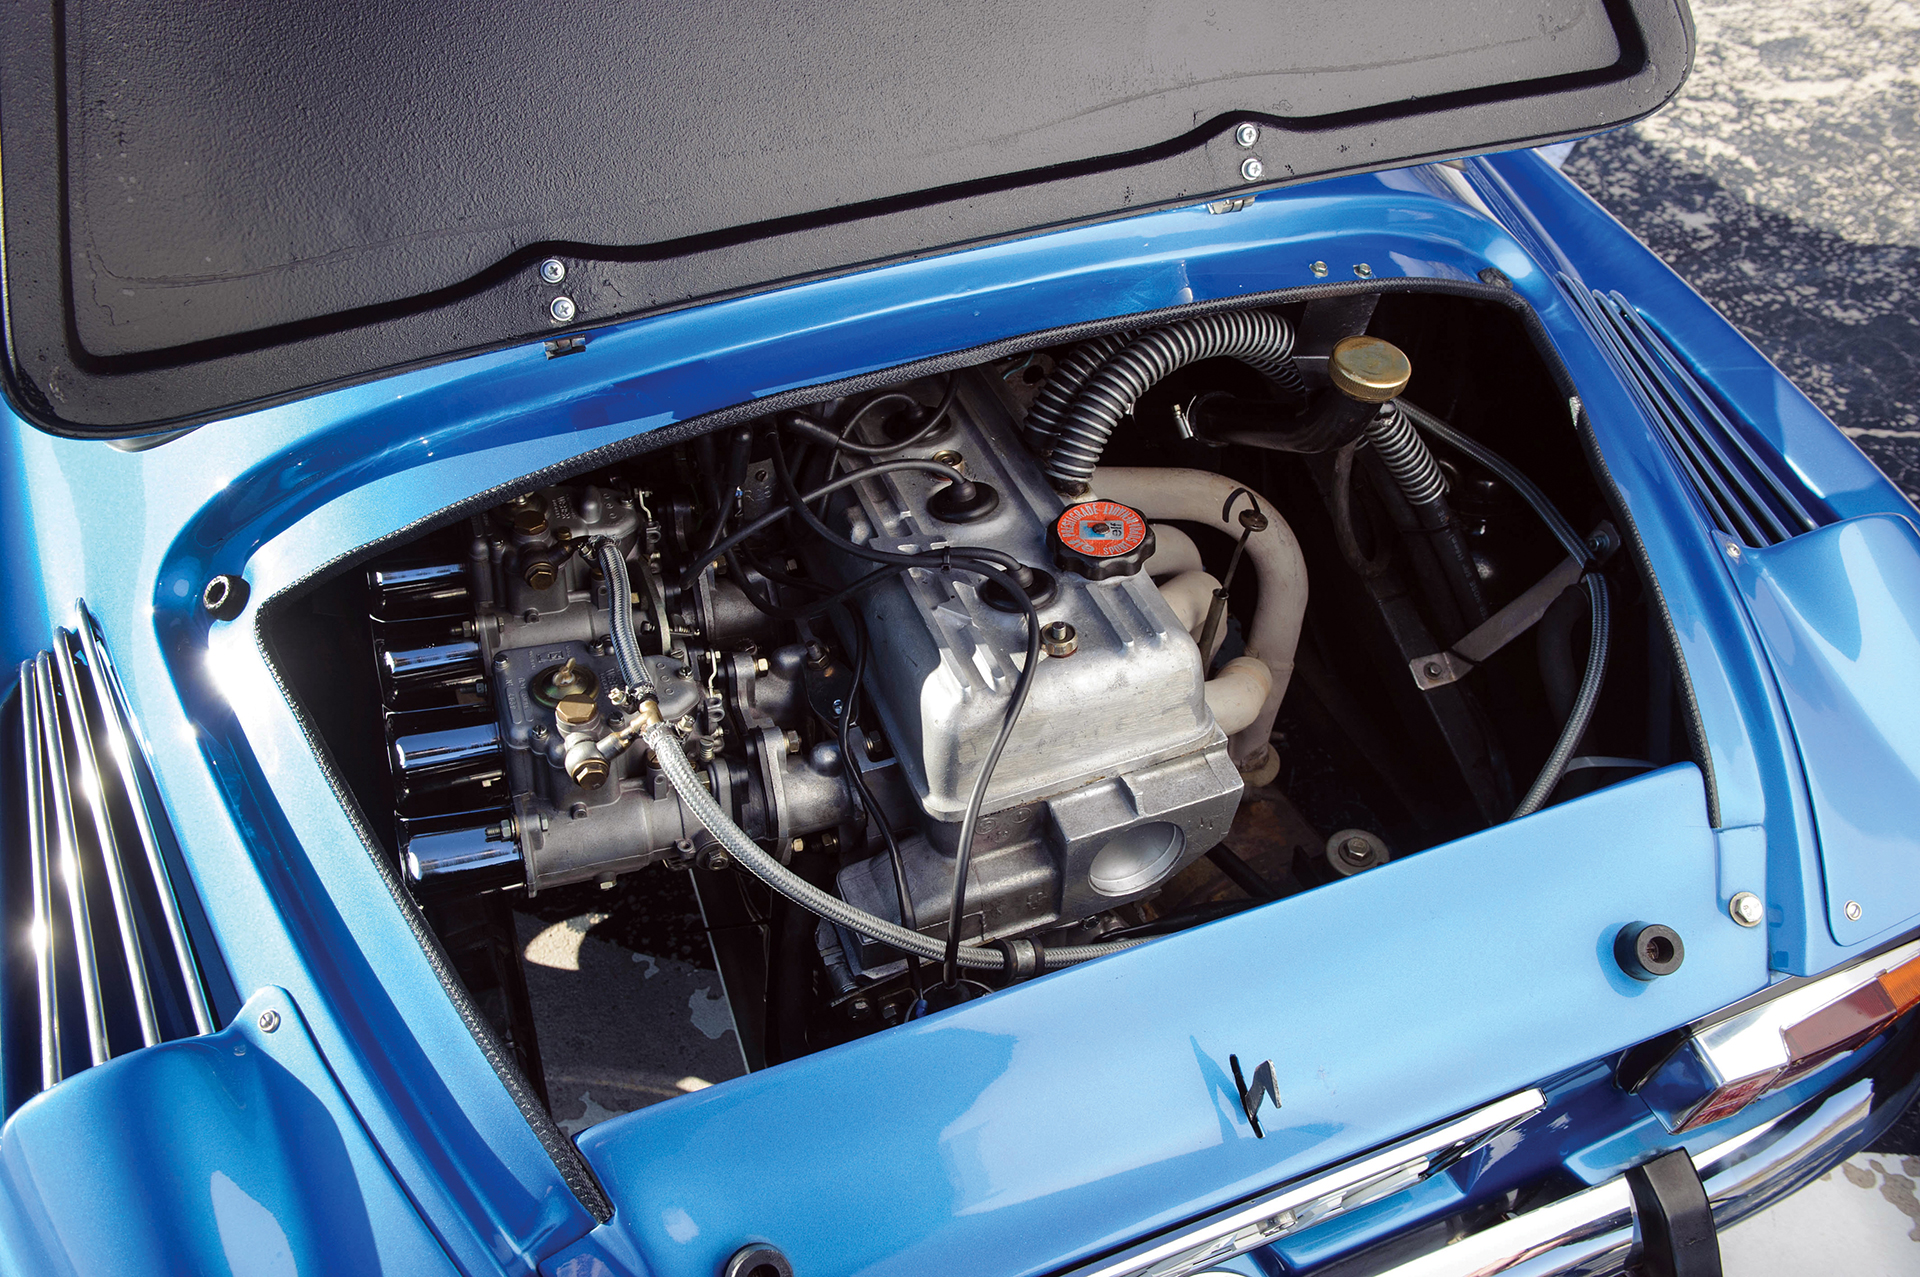 Alpine A110 1600S - moteur / engine - Photo Tom Wood 2015 Courtesy of RM Auctions